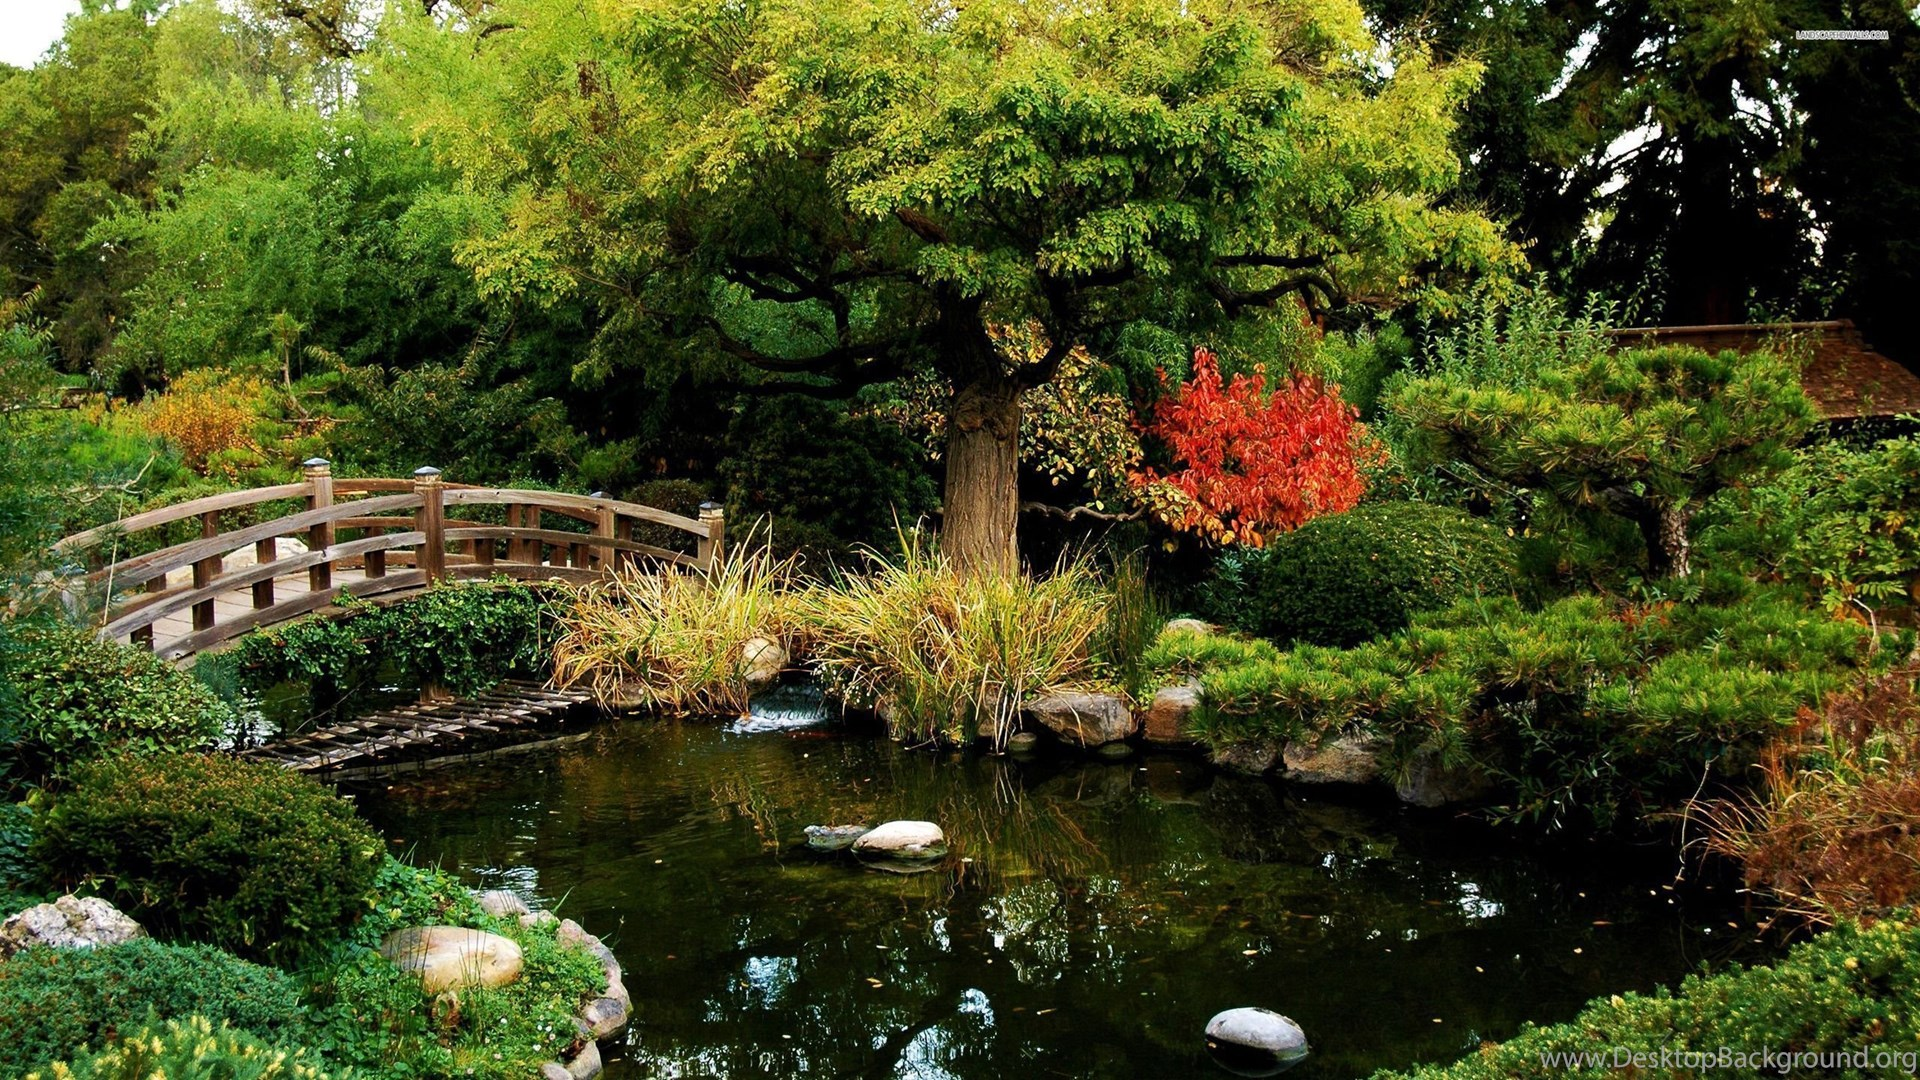 Japanese Garden Wallpapers: Splendid Japanese Garden Wallpapers Desktop Background